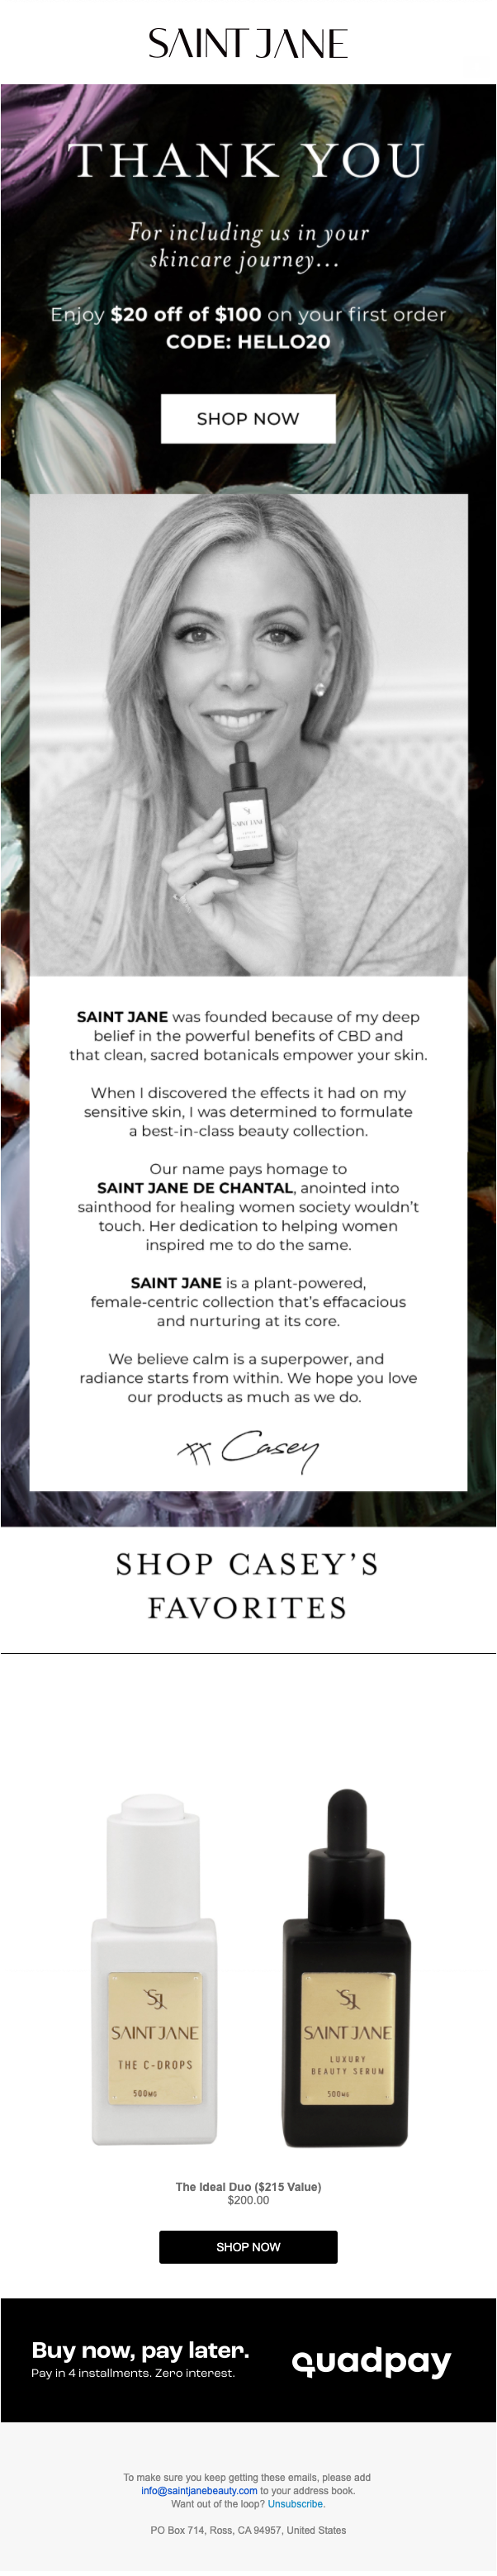 Saint Jane Beauty's first welcome email.